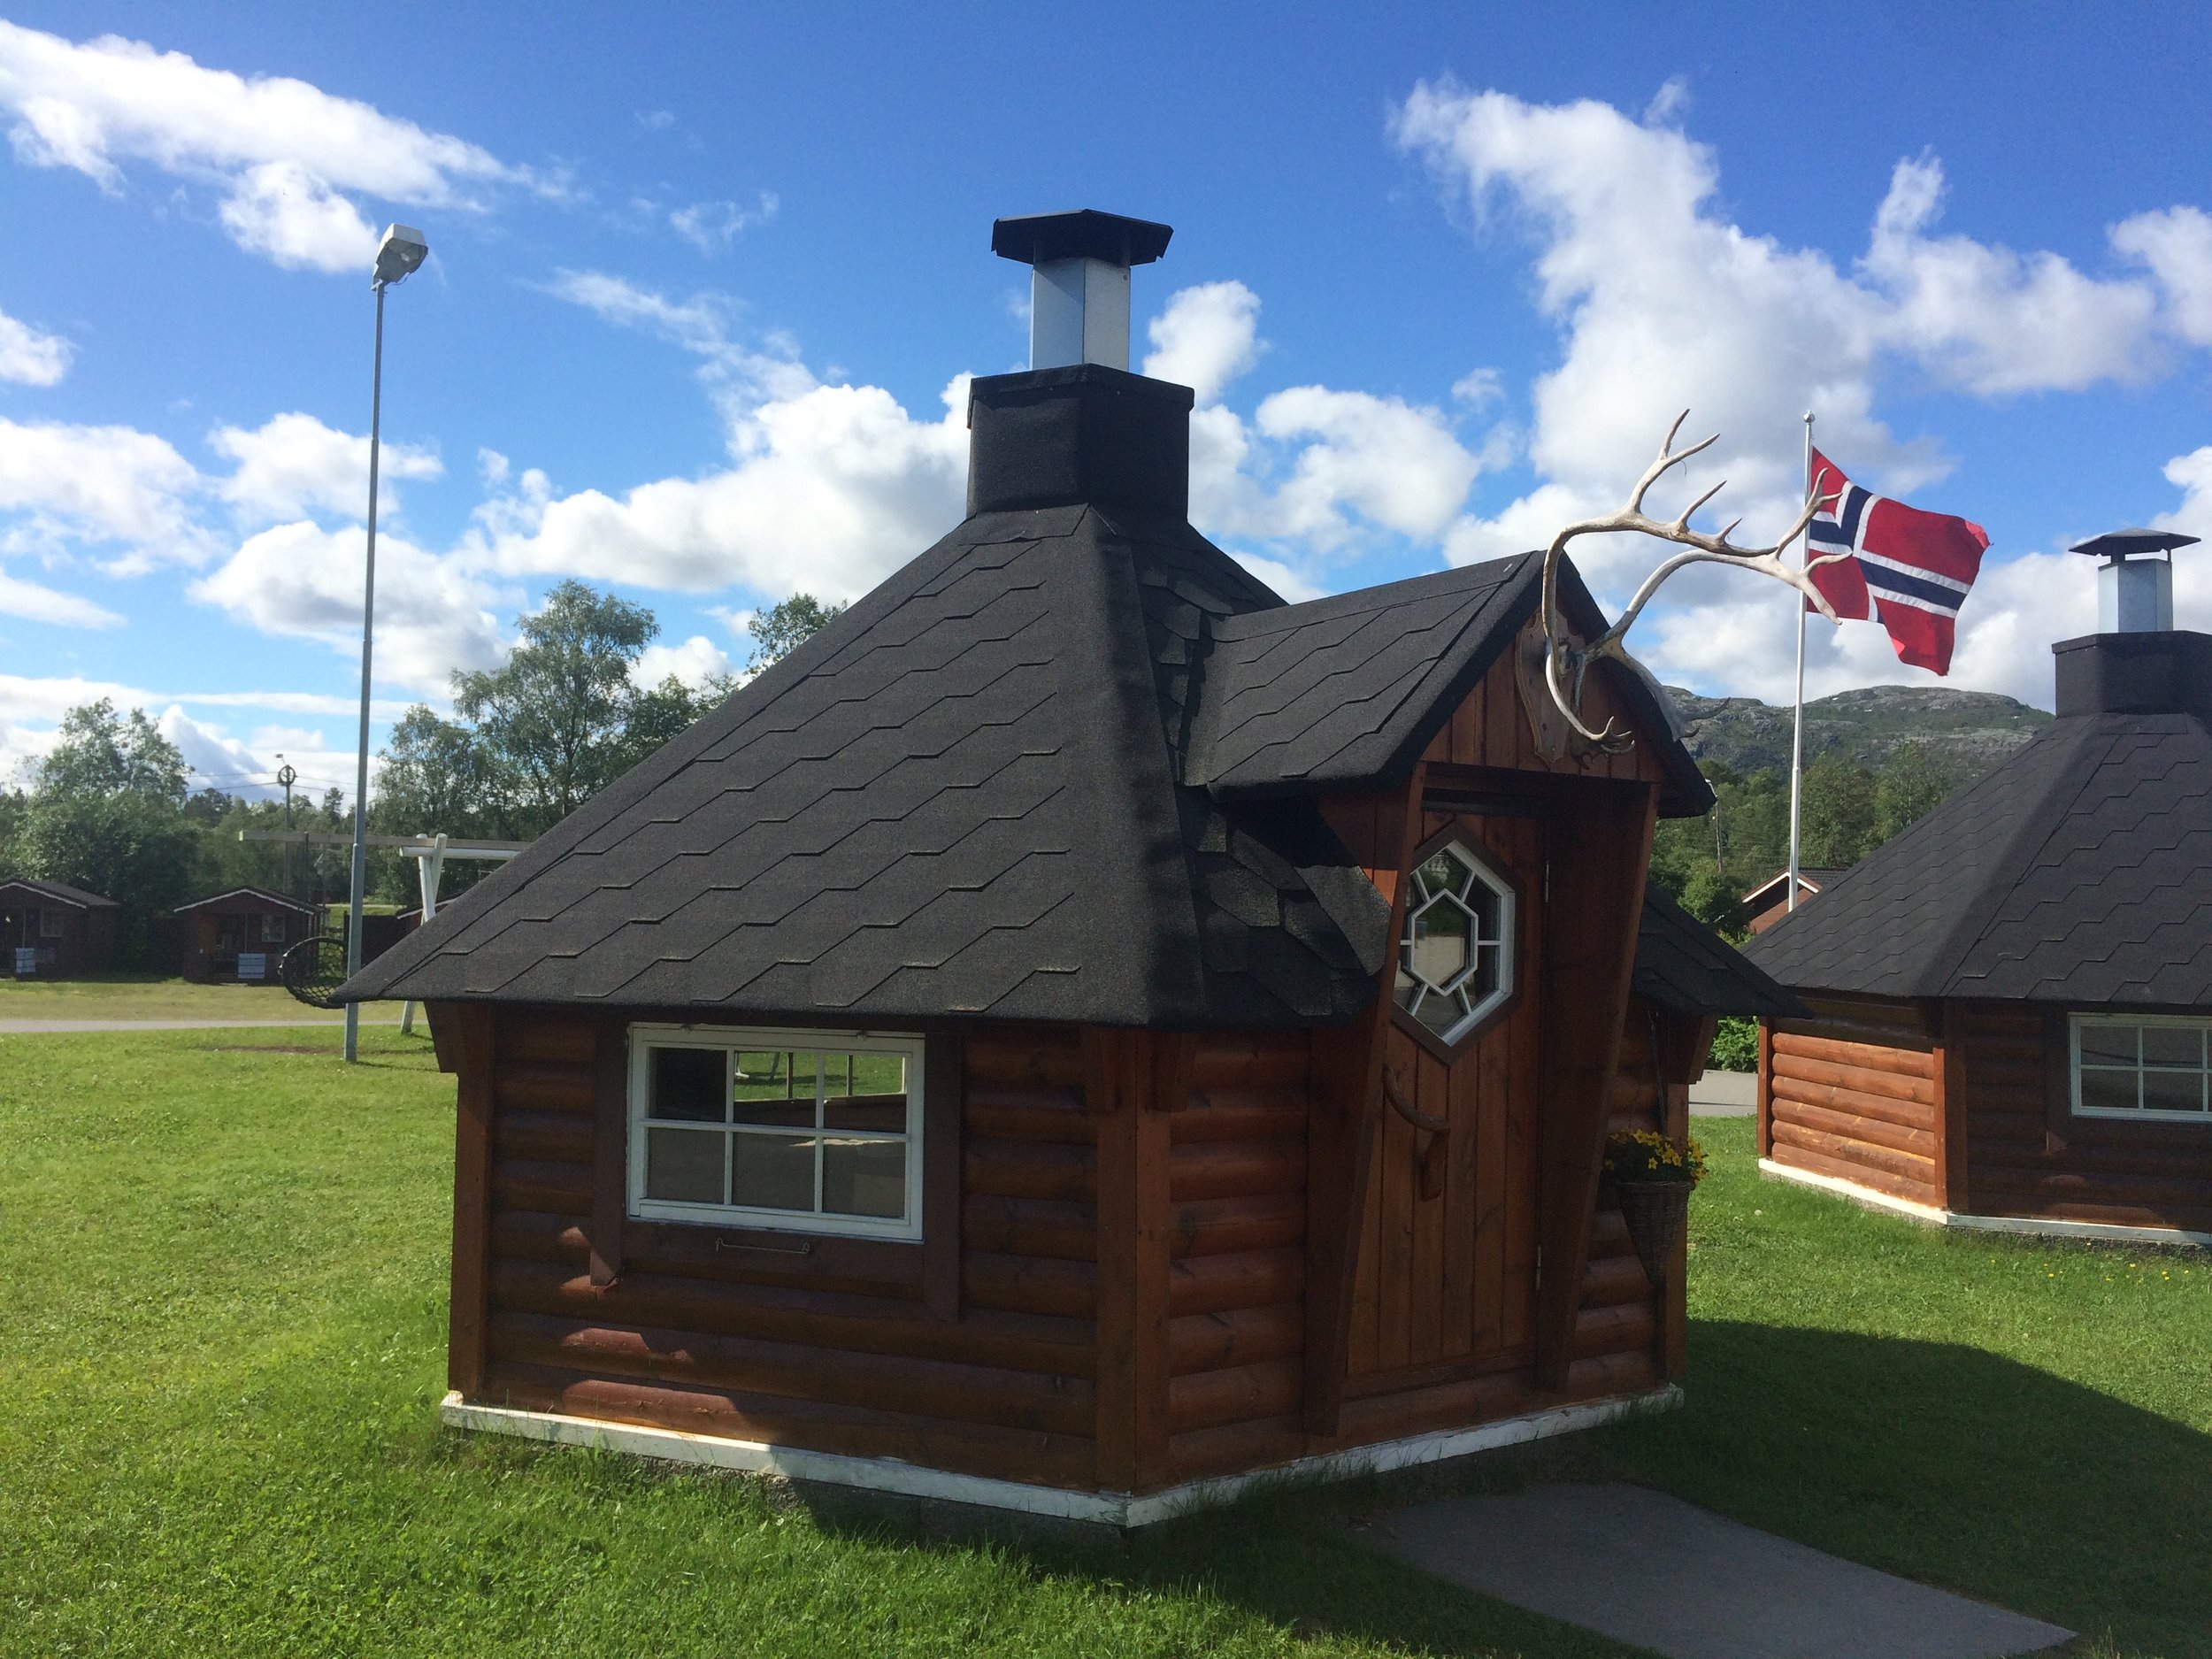 Typical Norway - A barbeque hut with a fire pit in the middle with benches around for some outdoor cooking in the warm.